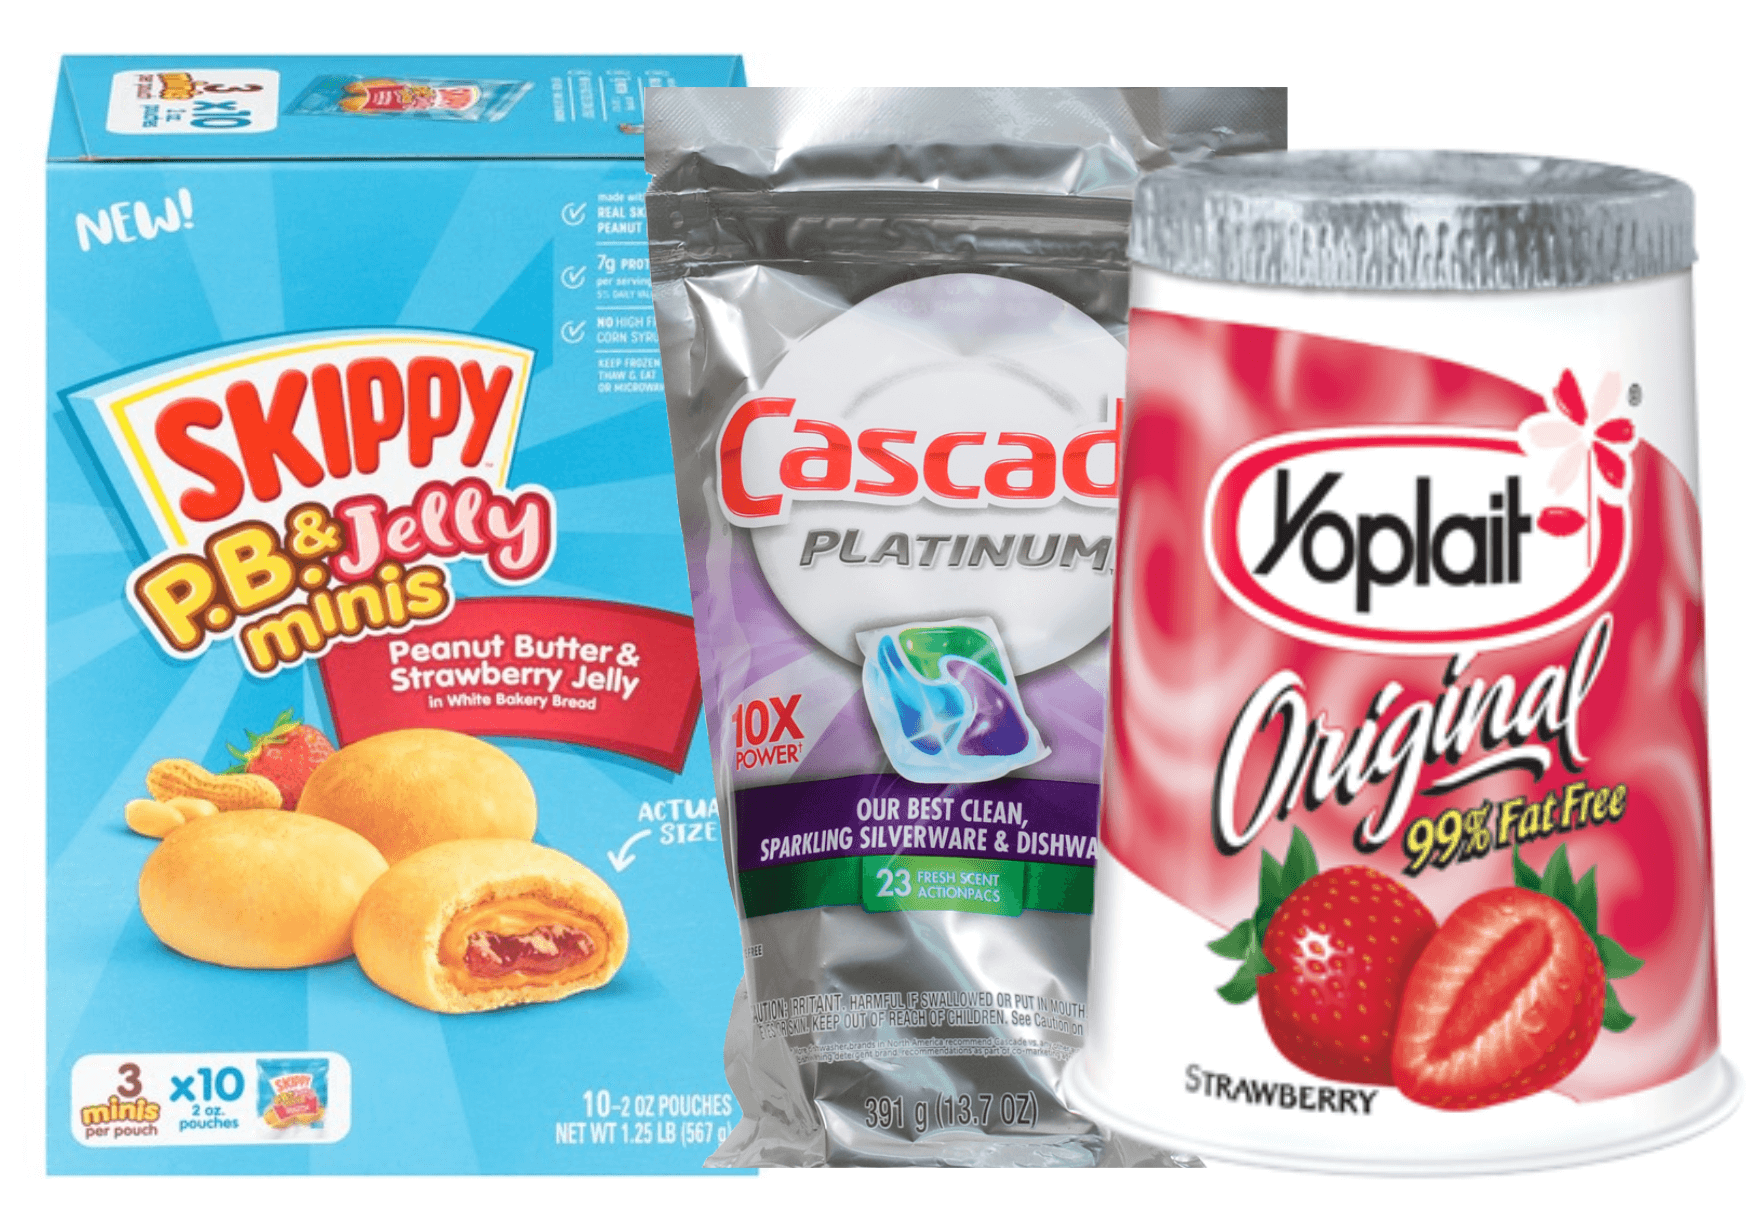 image regarding Yoplait Printable Coupons referred to as Todays Final Fresh new Discount codes - Help save upon Skippy, Cascade, Yoplait